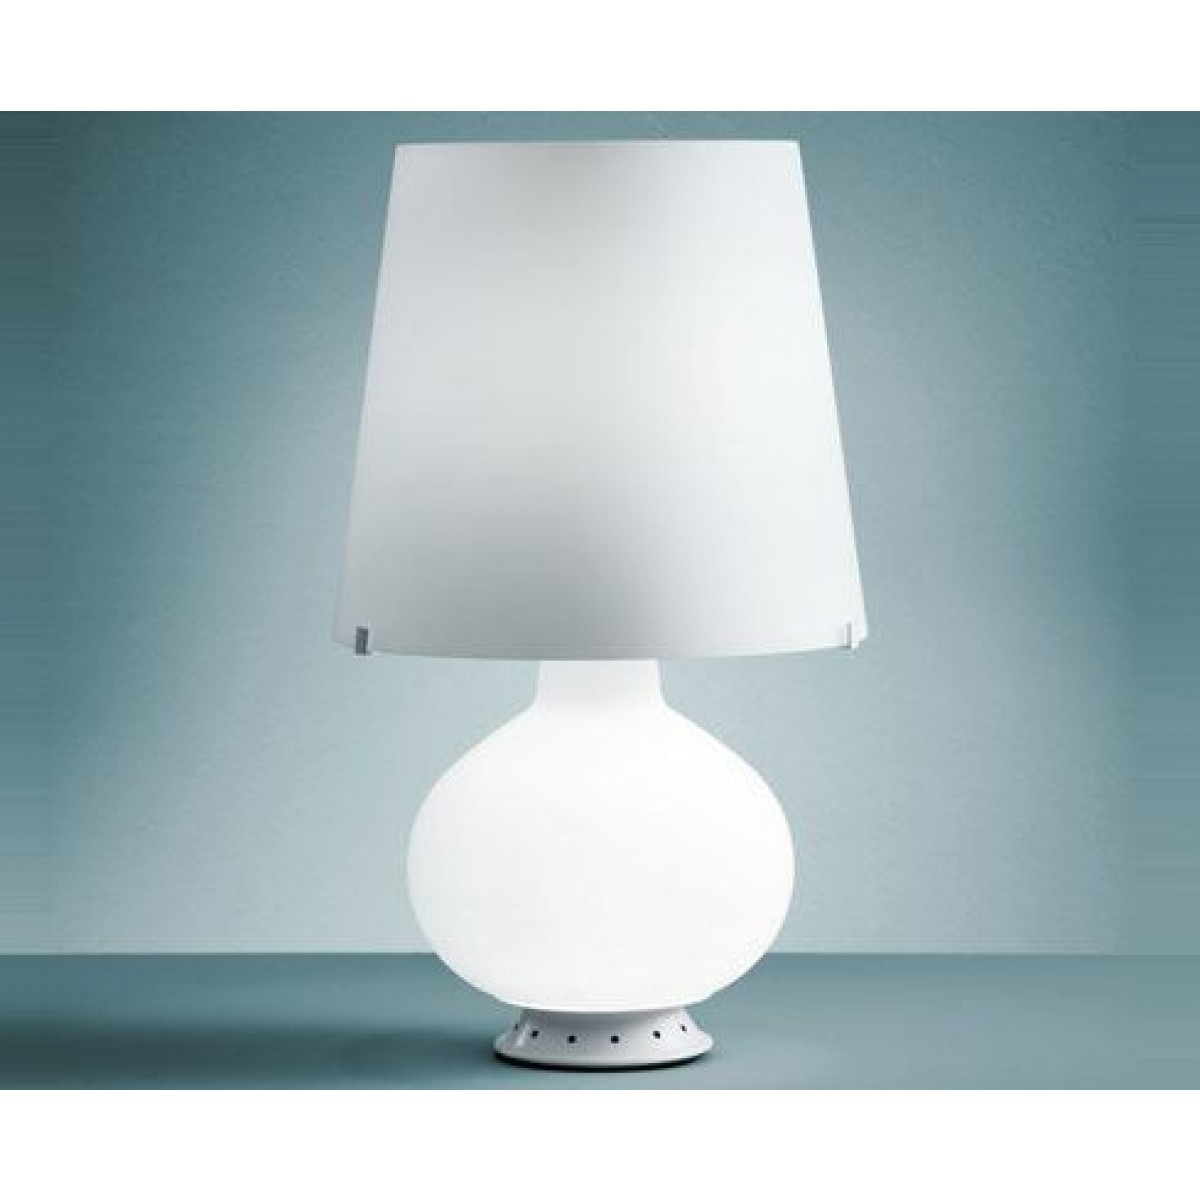 Fontanaarte Fontana Big Table Lamp Outlet Desout Com